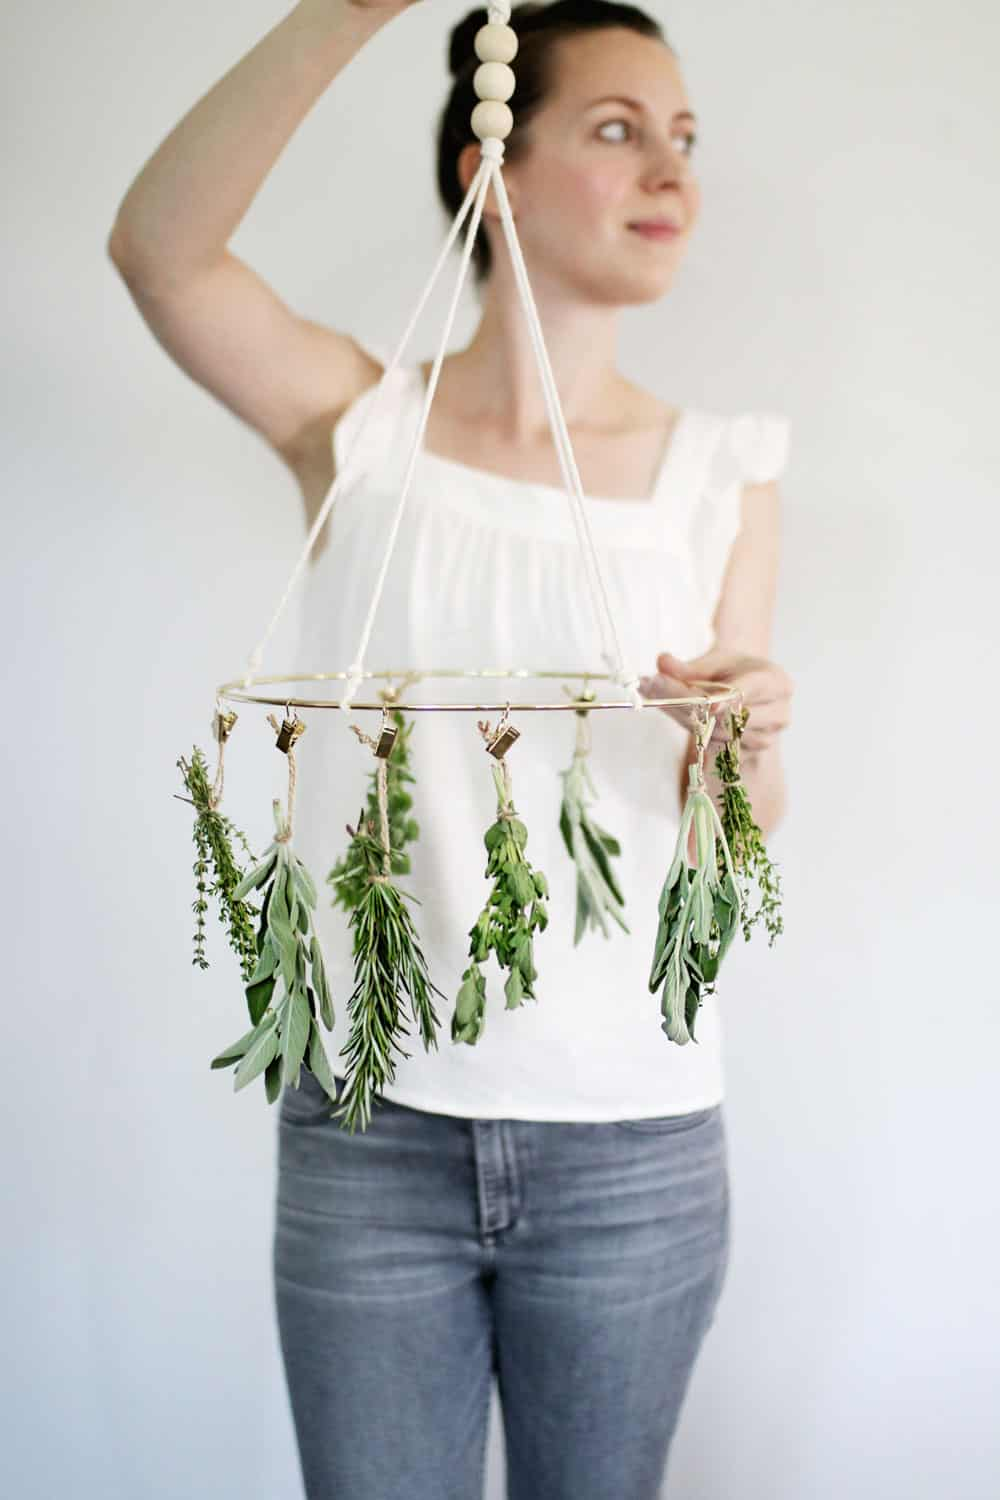 How to make a simple herb drying rack